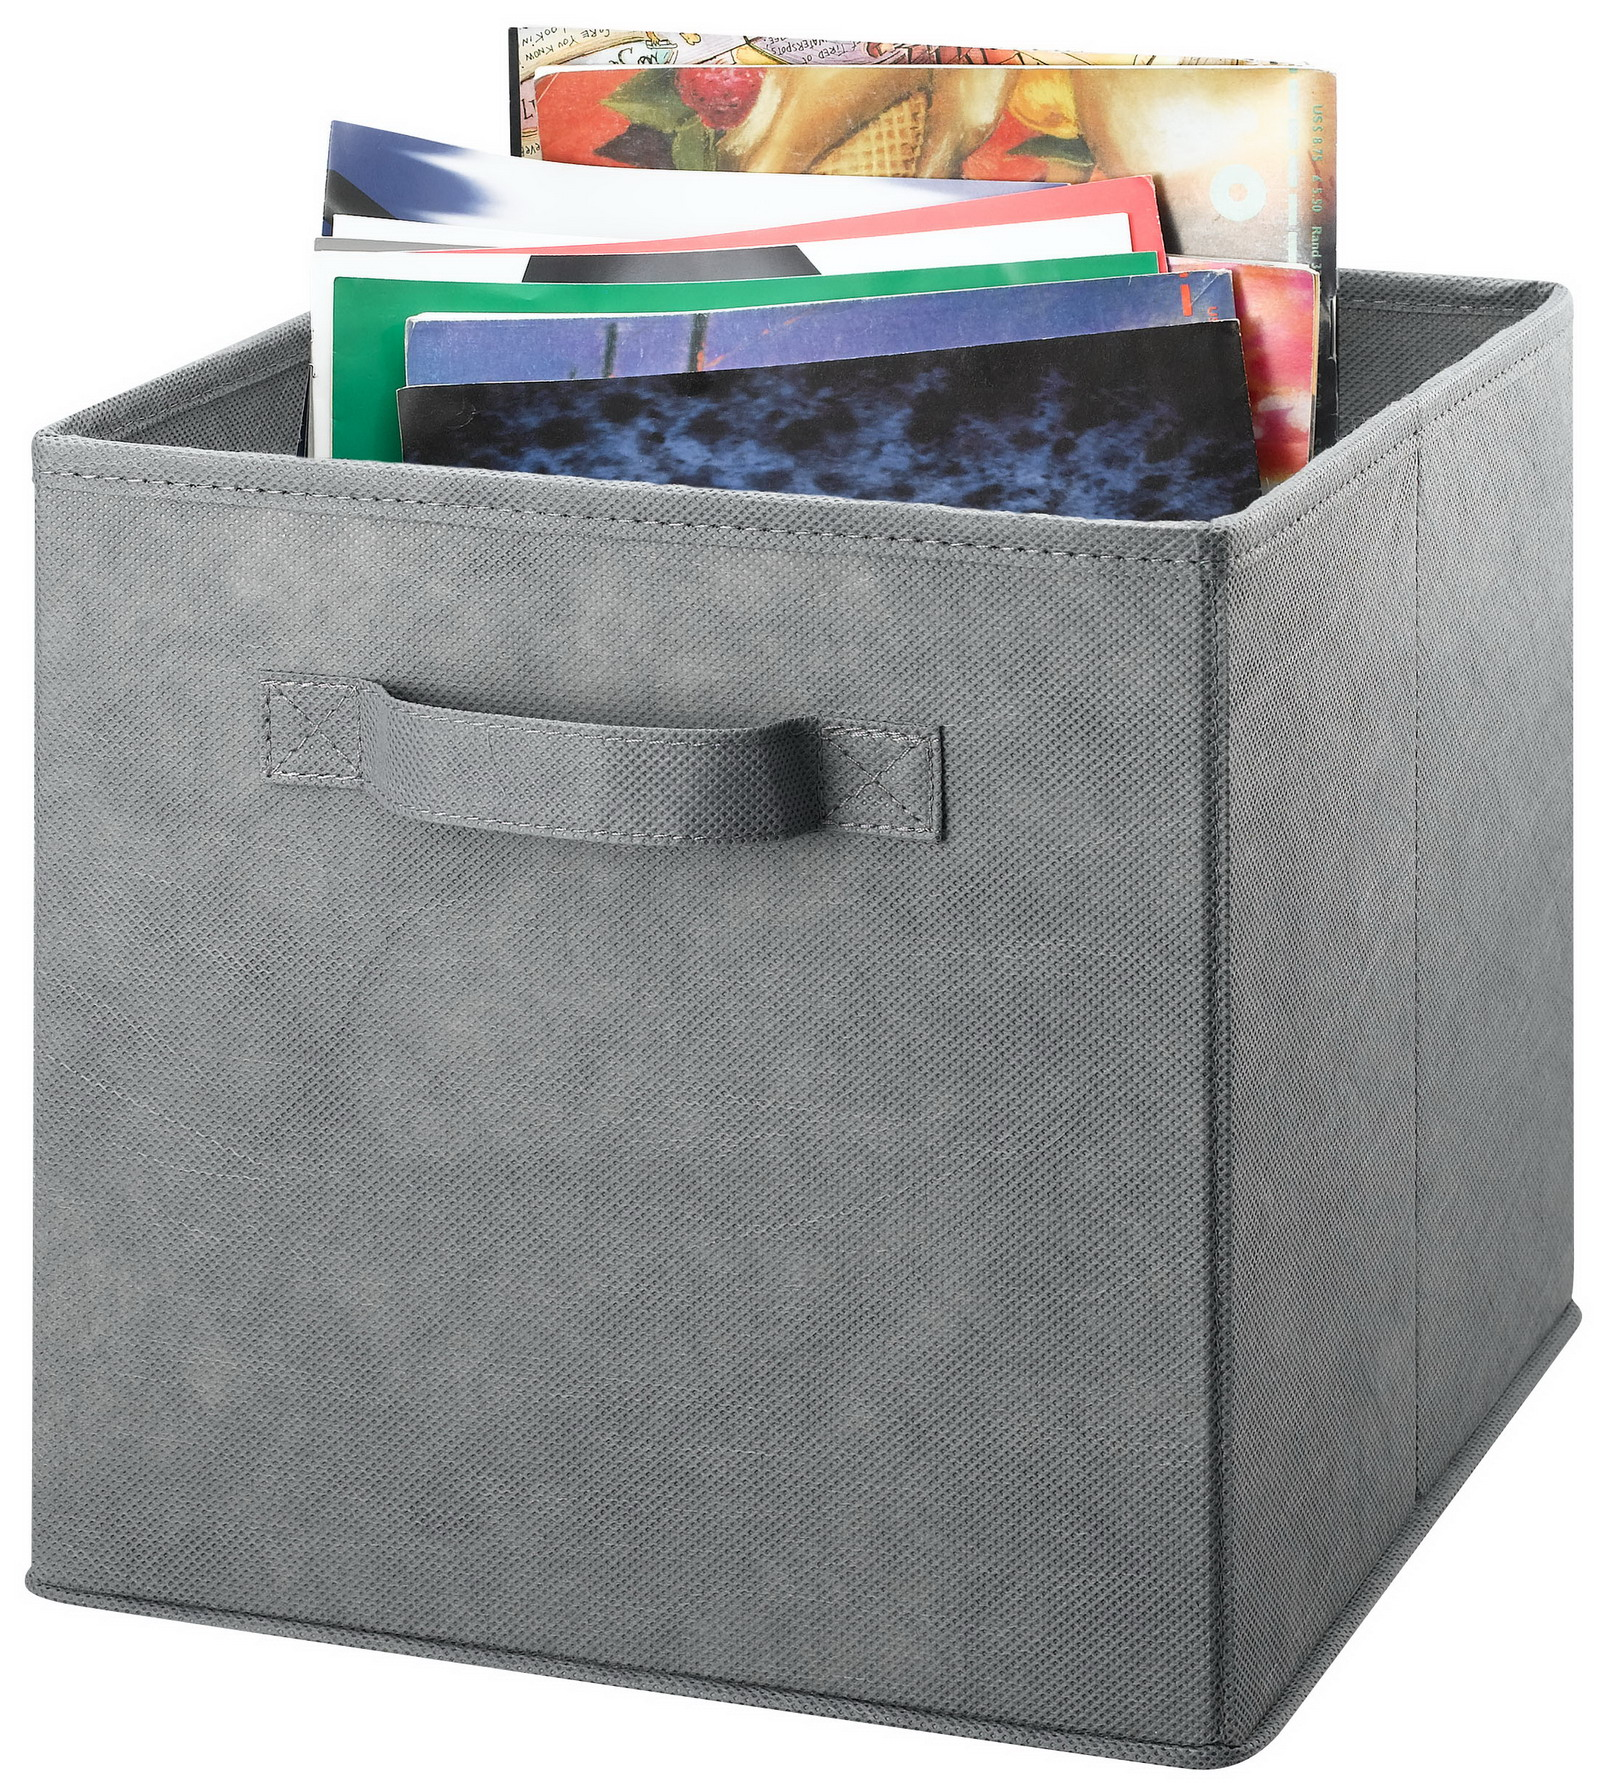 Image of Essential Home Foldable Storage Bin - Gray